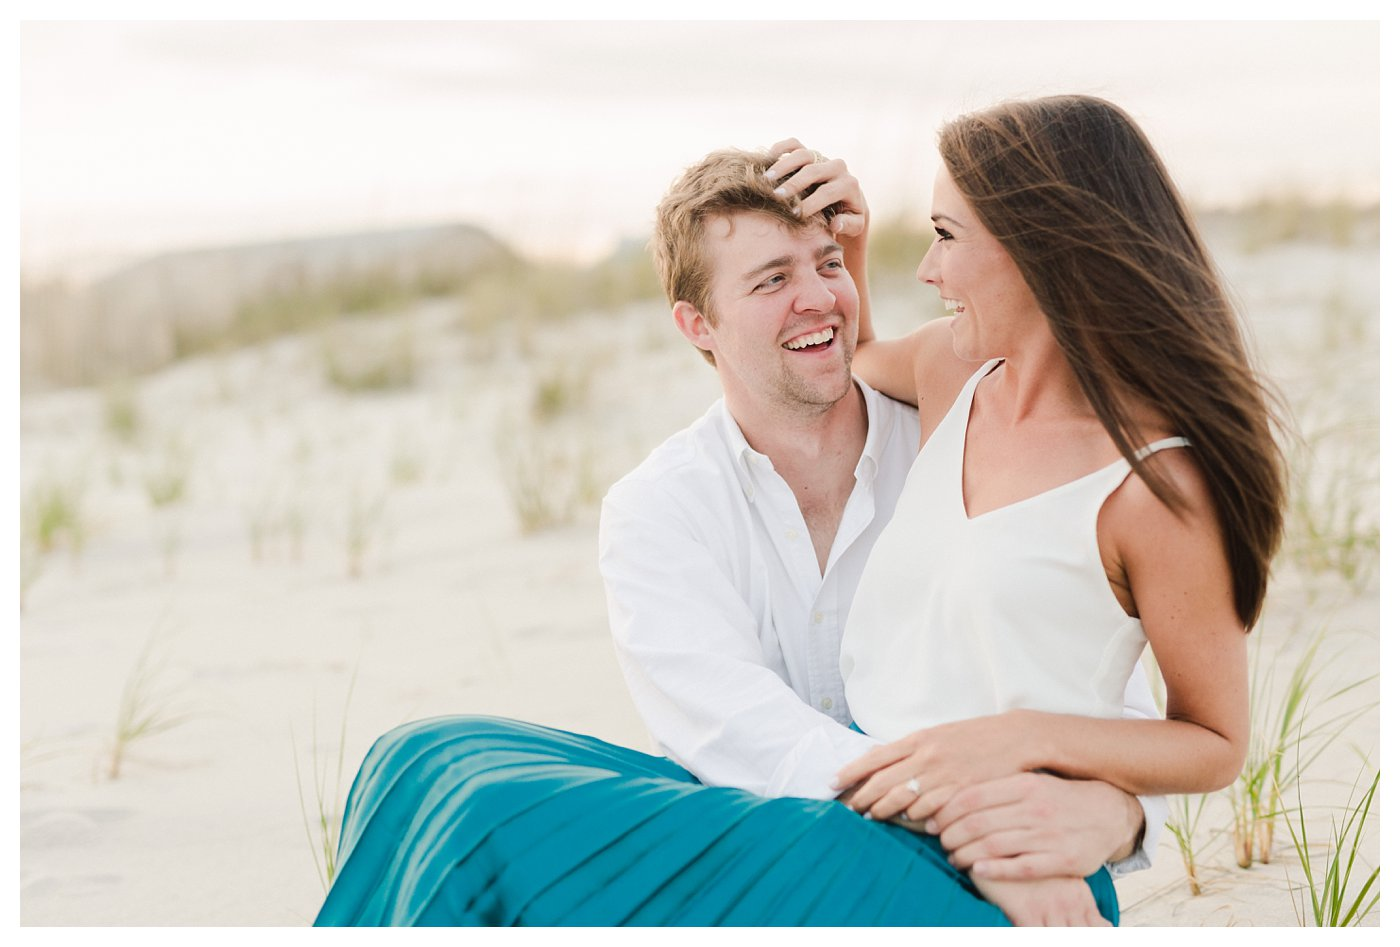 Ocean_Isle_NC_Beach_Coastal_Engagement_Session_Turqoise_White_Candlelit_0010.jpg